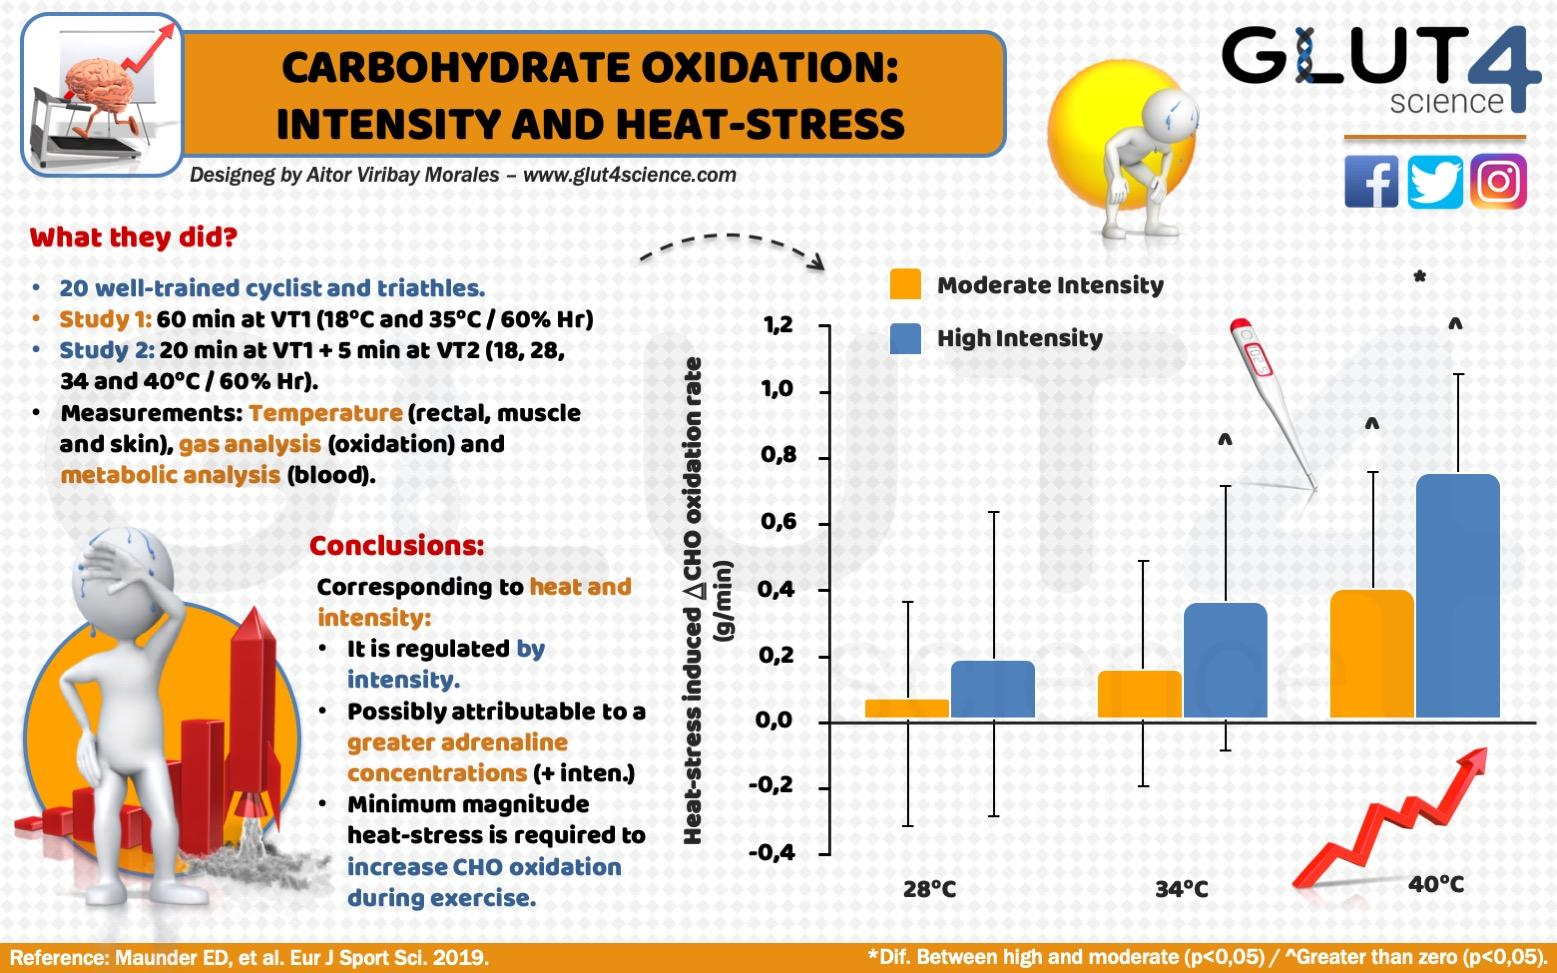 Effects of heat on carbohydrate oxidation